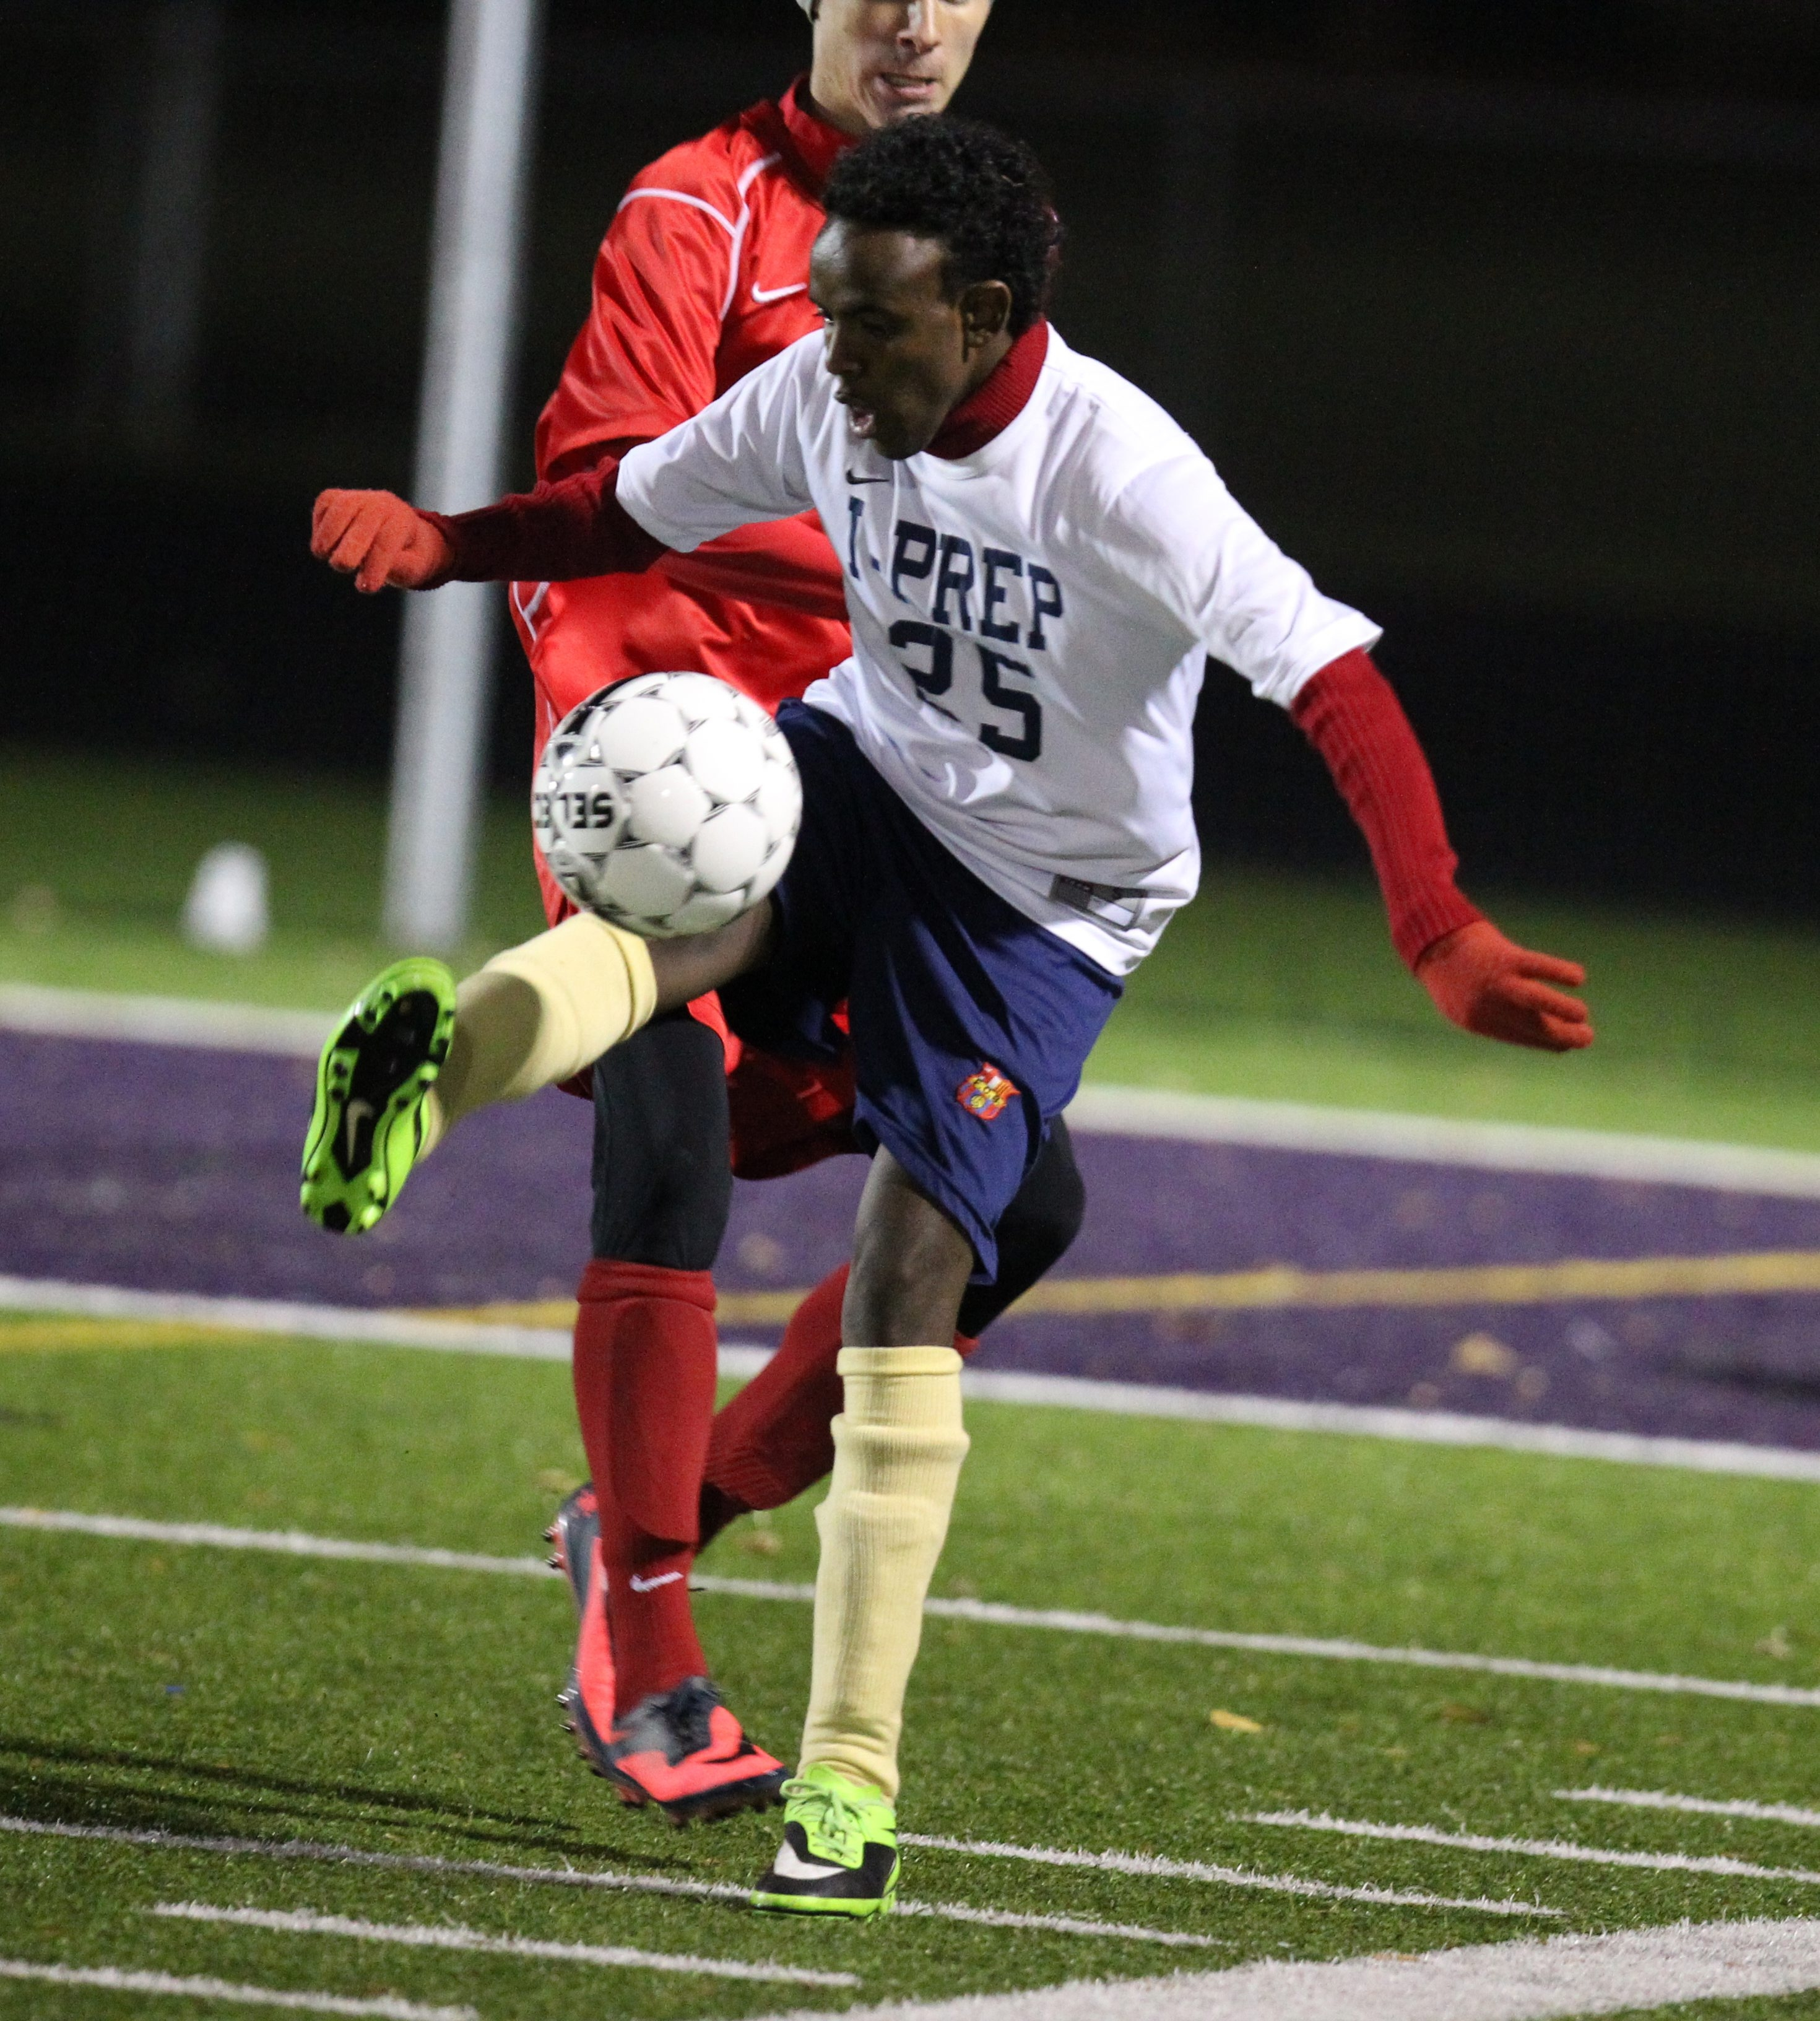 International Prep's Mohamud Abdi works the ball against Randolph in the Section VI Class C boys soccer finals at Hamburg High School .